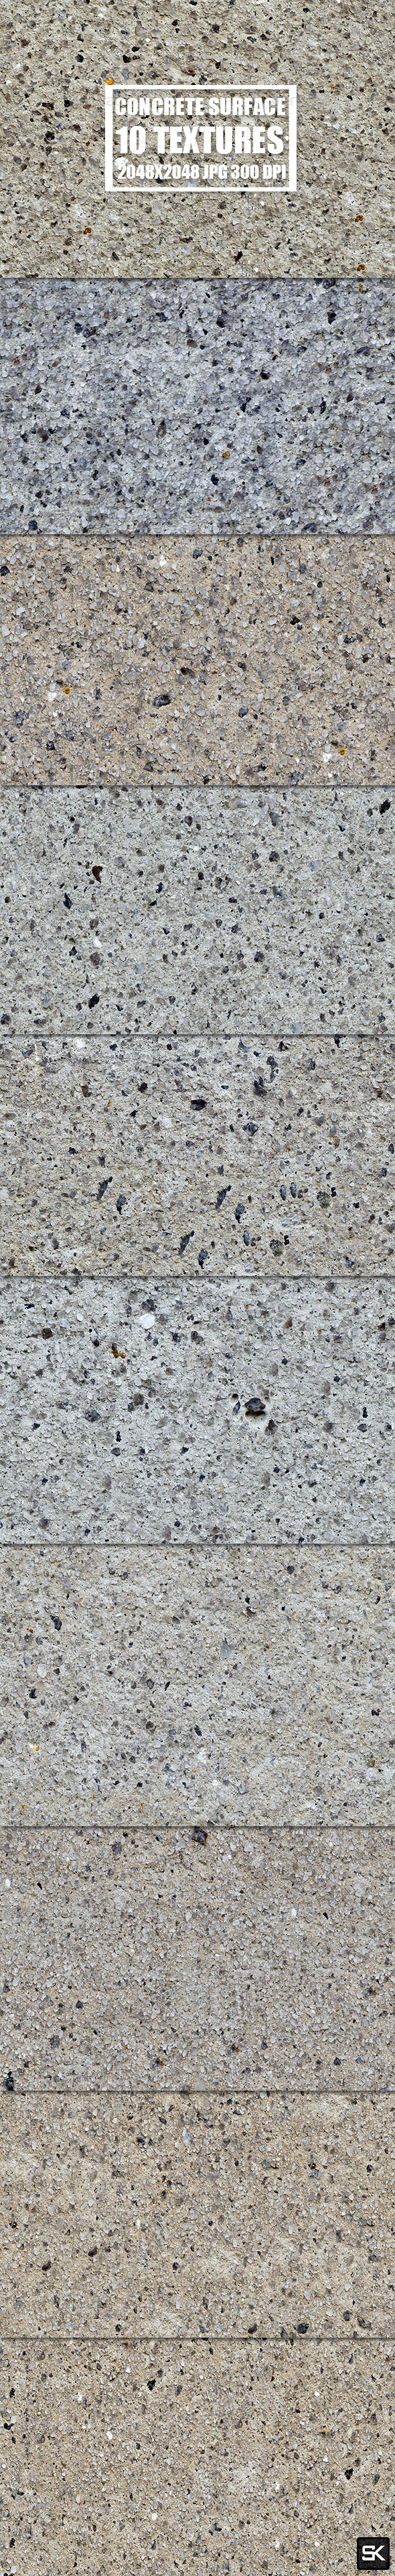 Tileable Concrete Surface - 3DOcean Item for Sale